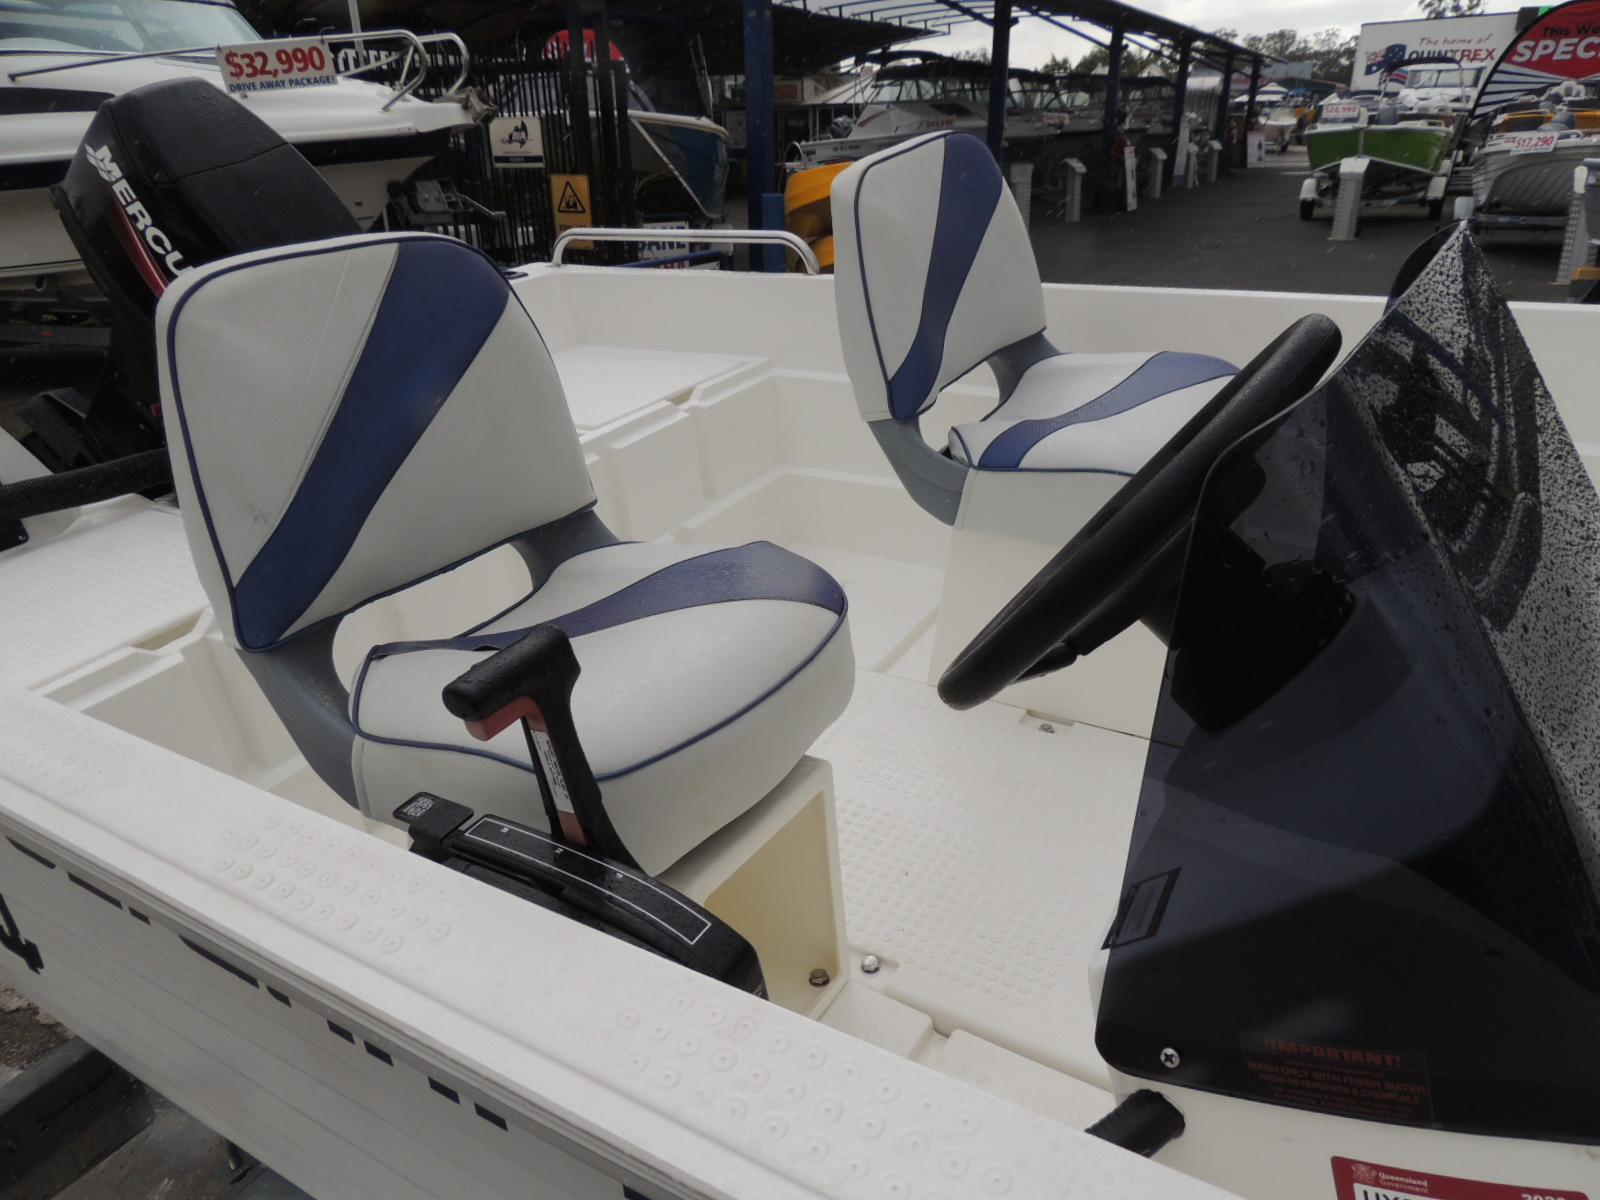 For Sale This 4 10 Polycraft Challenger Side Console Very